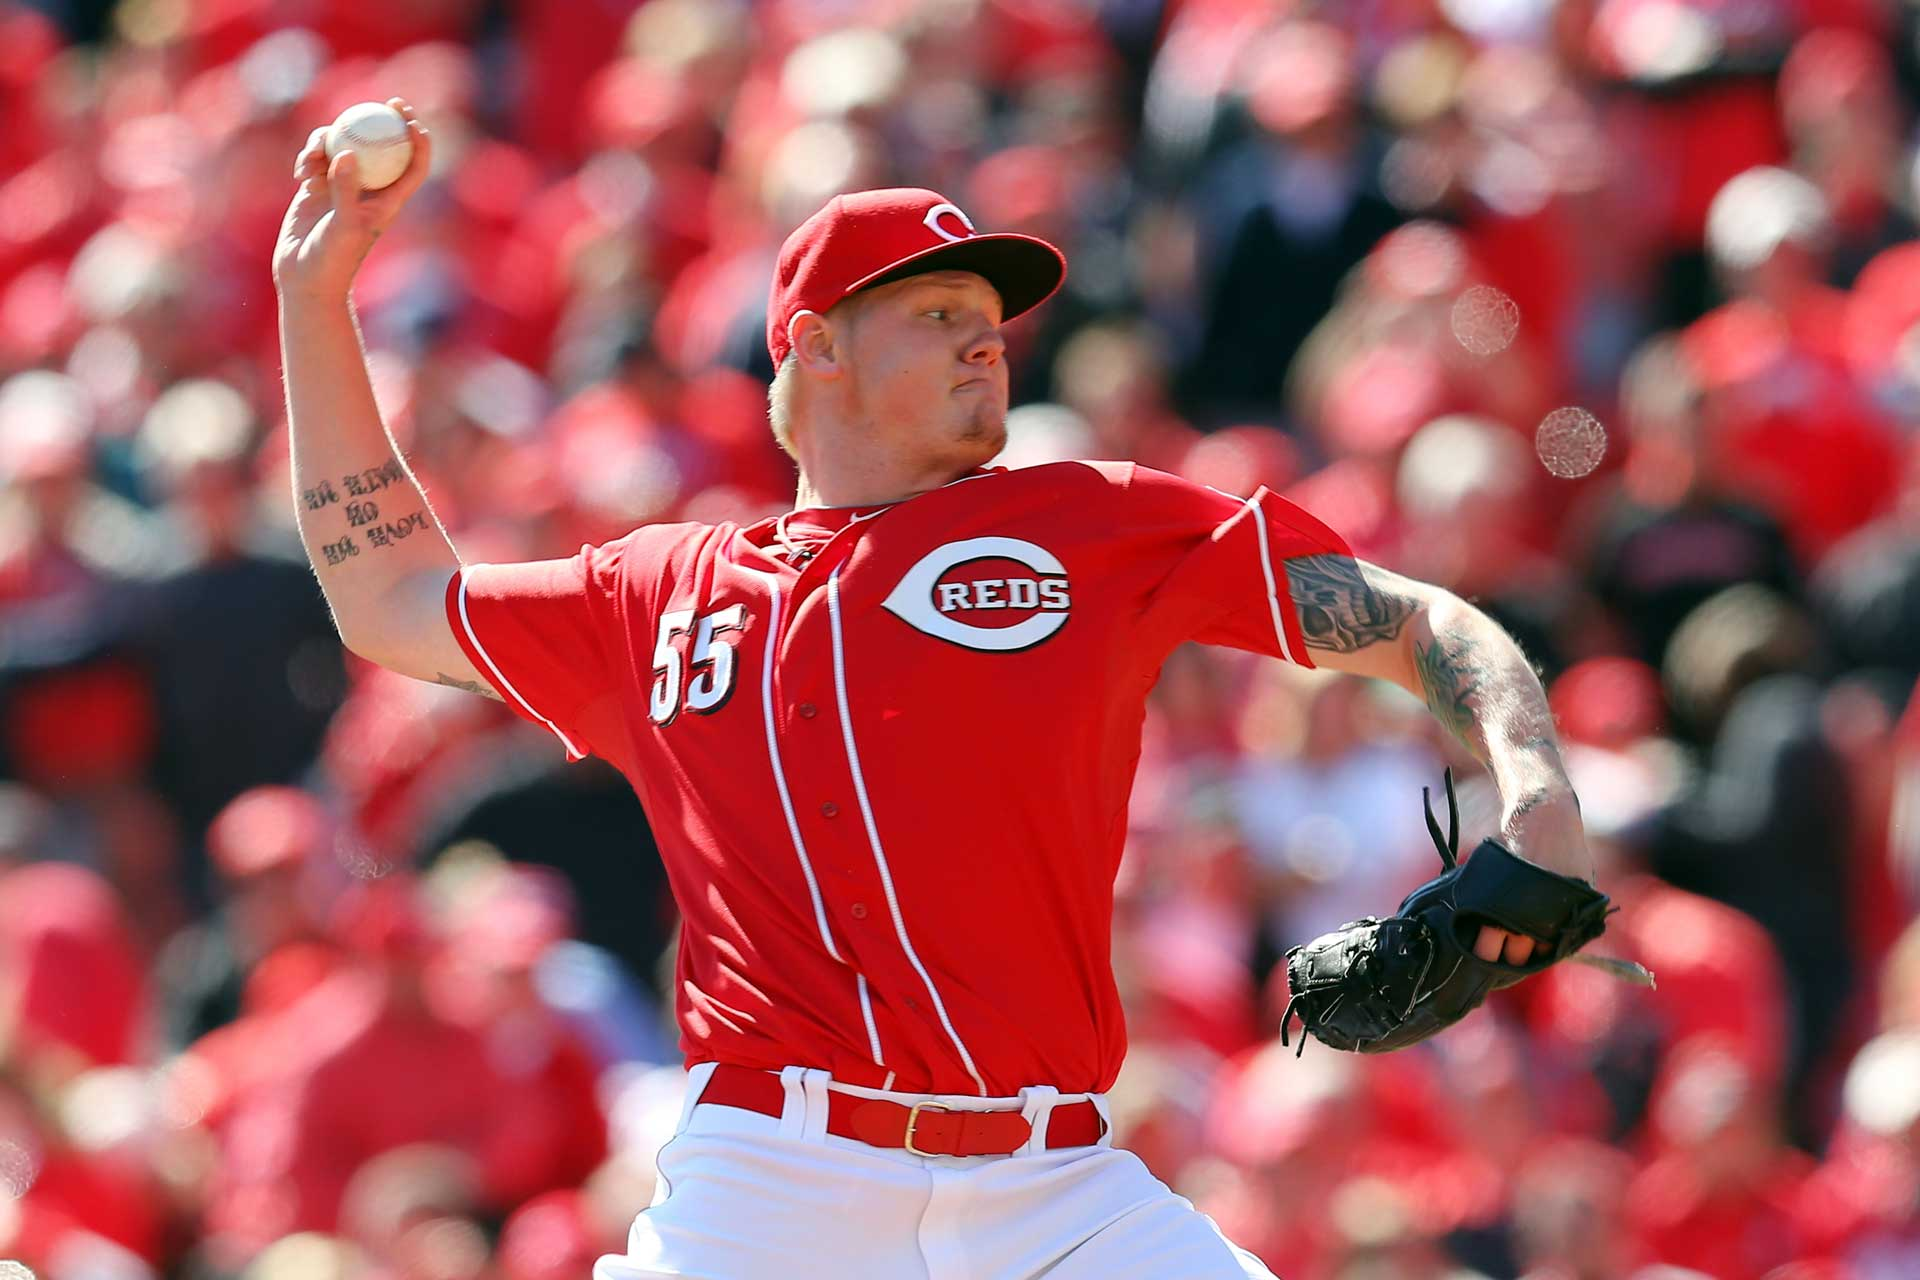 The 2012 Reds had a legitimate shot to win a World Series, and then